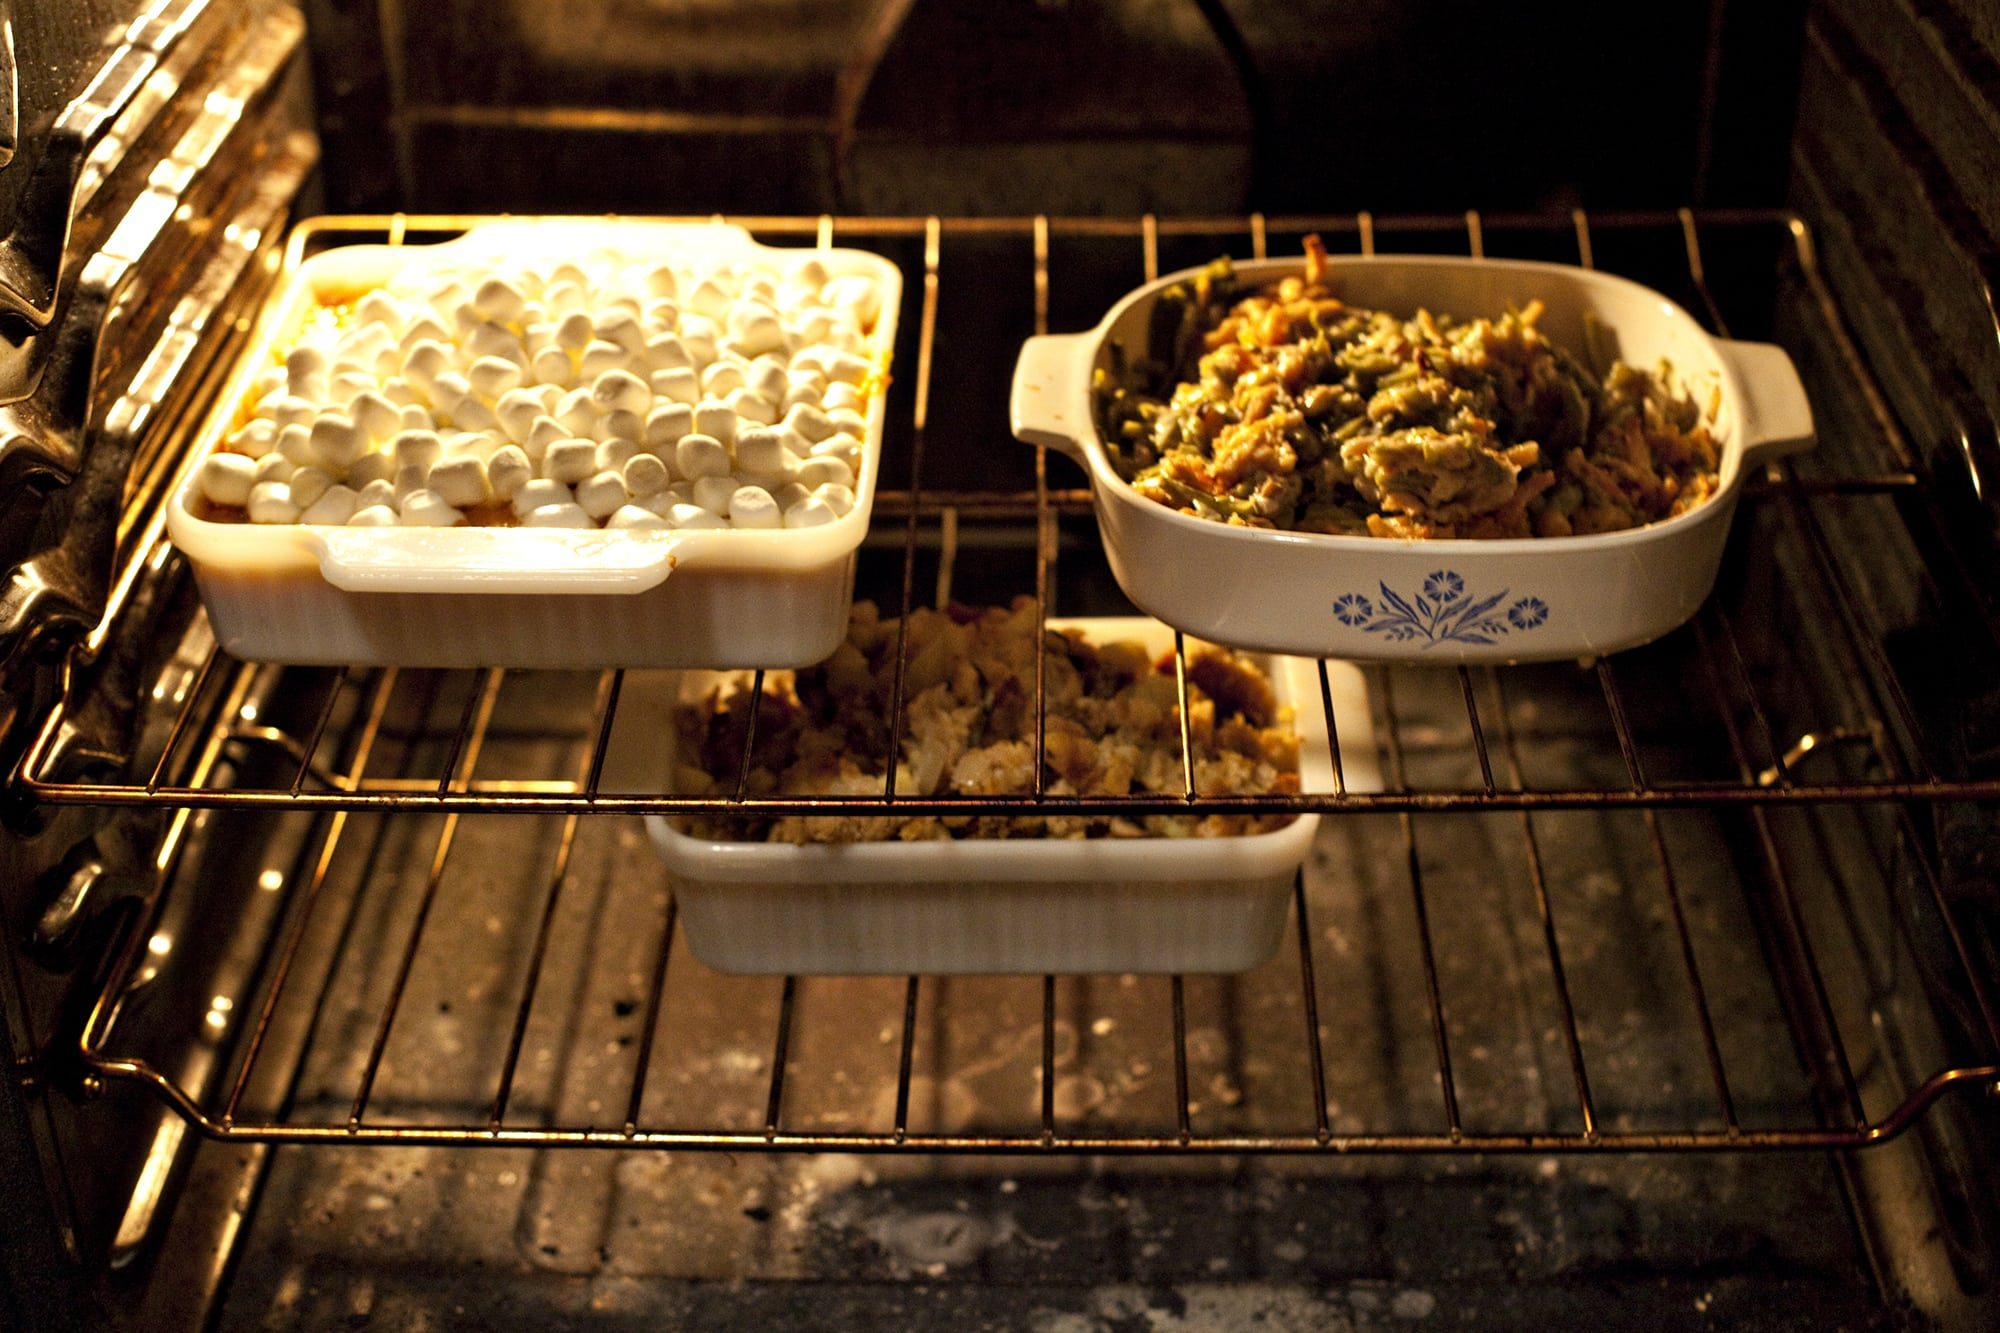 Cooking Thanksgiving Dinner - Side dishes in the oven